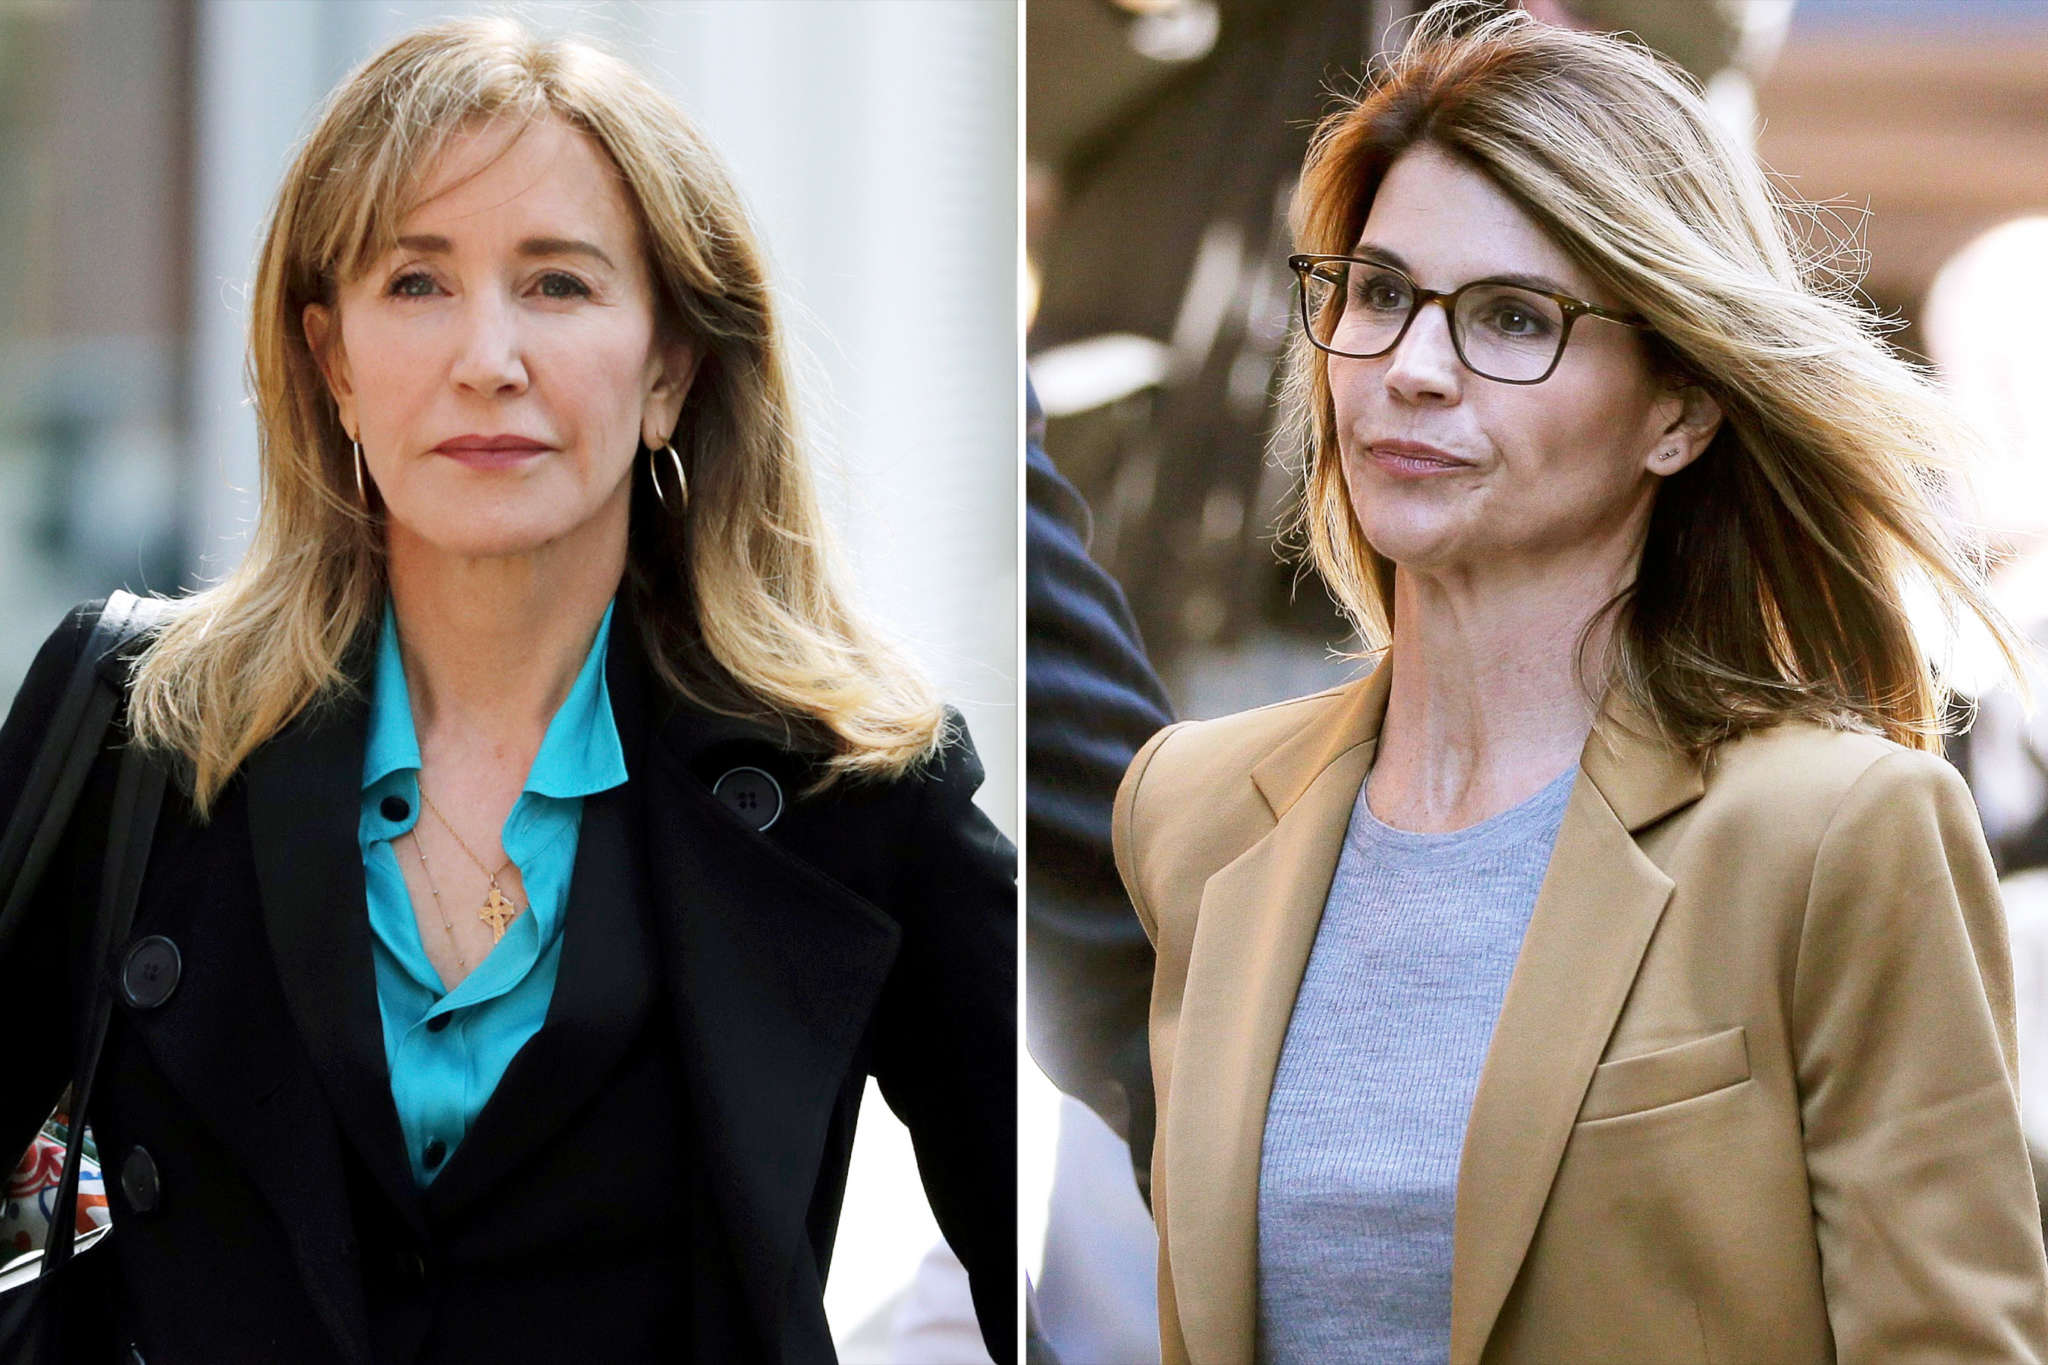 """lori-loughlin-is-likely-to-get-a-much-harsher-prison-sentence-than-felicity-huffman-heres-why"""